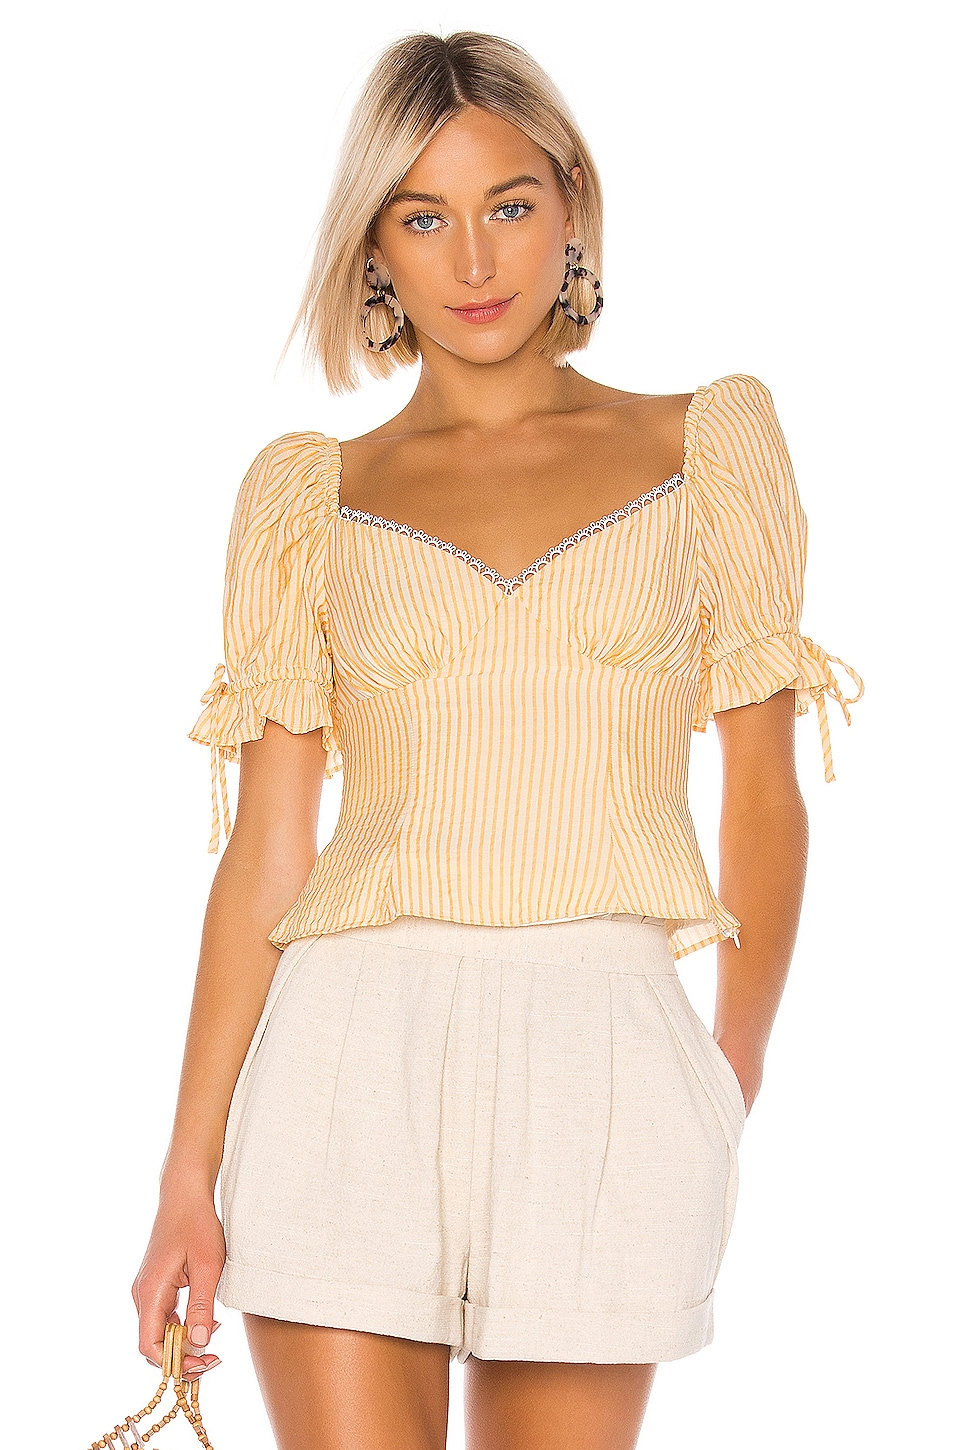 LPA Apollonia Top in Ivory and Yellow